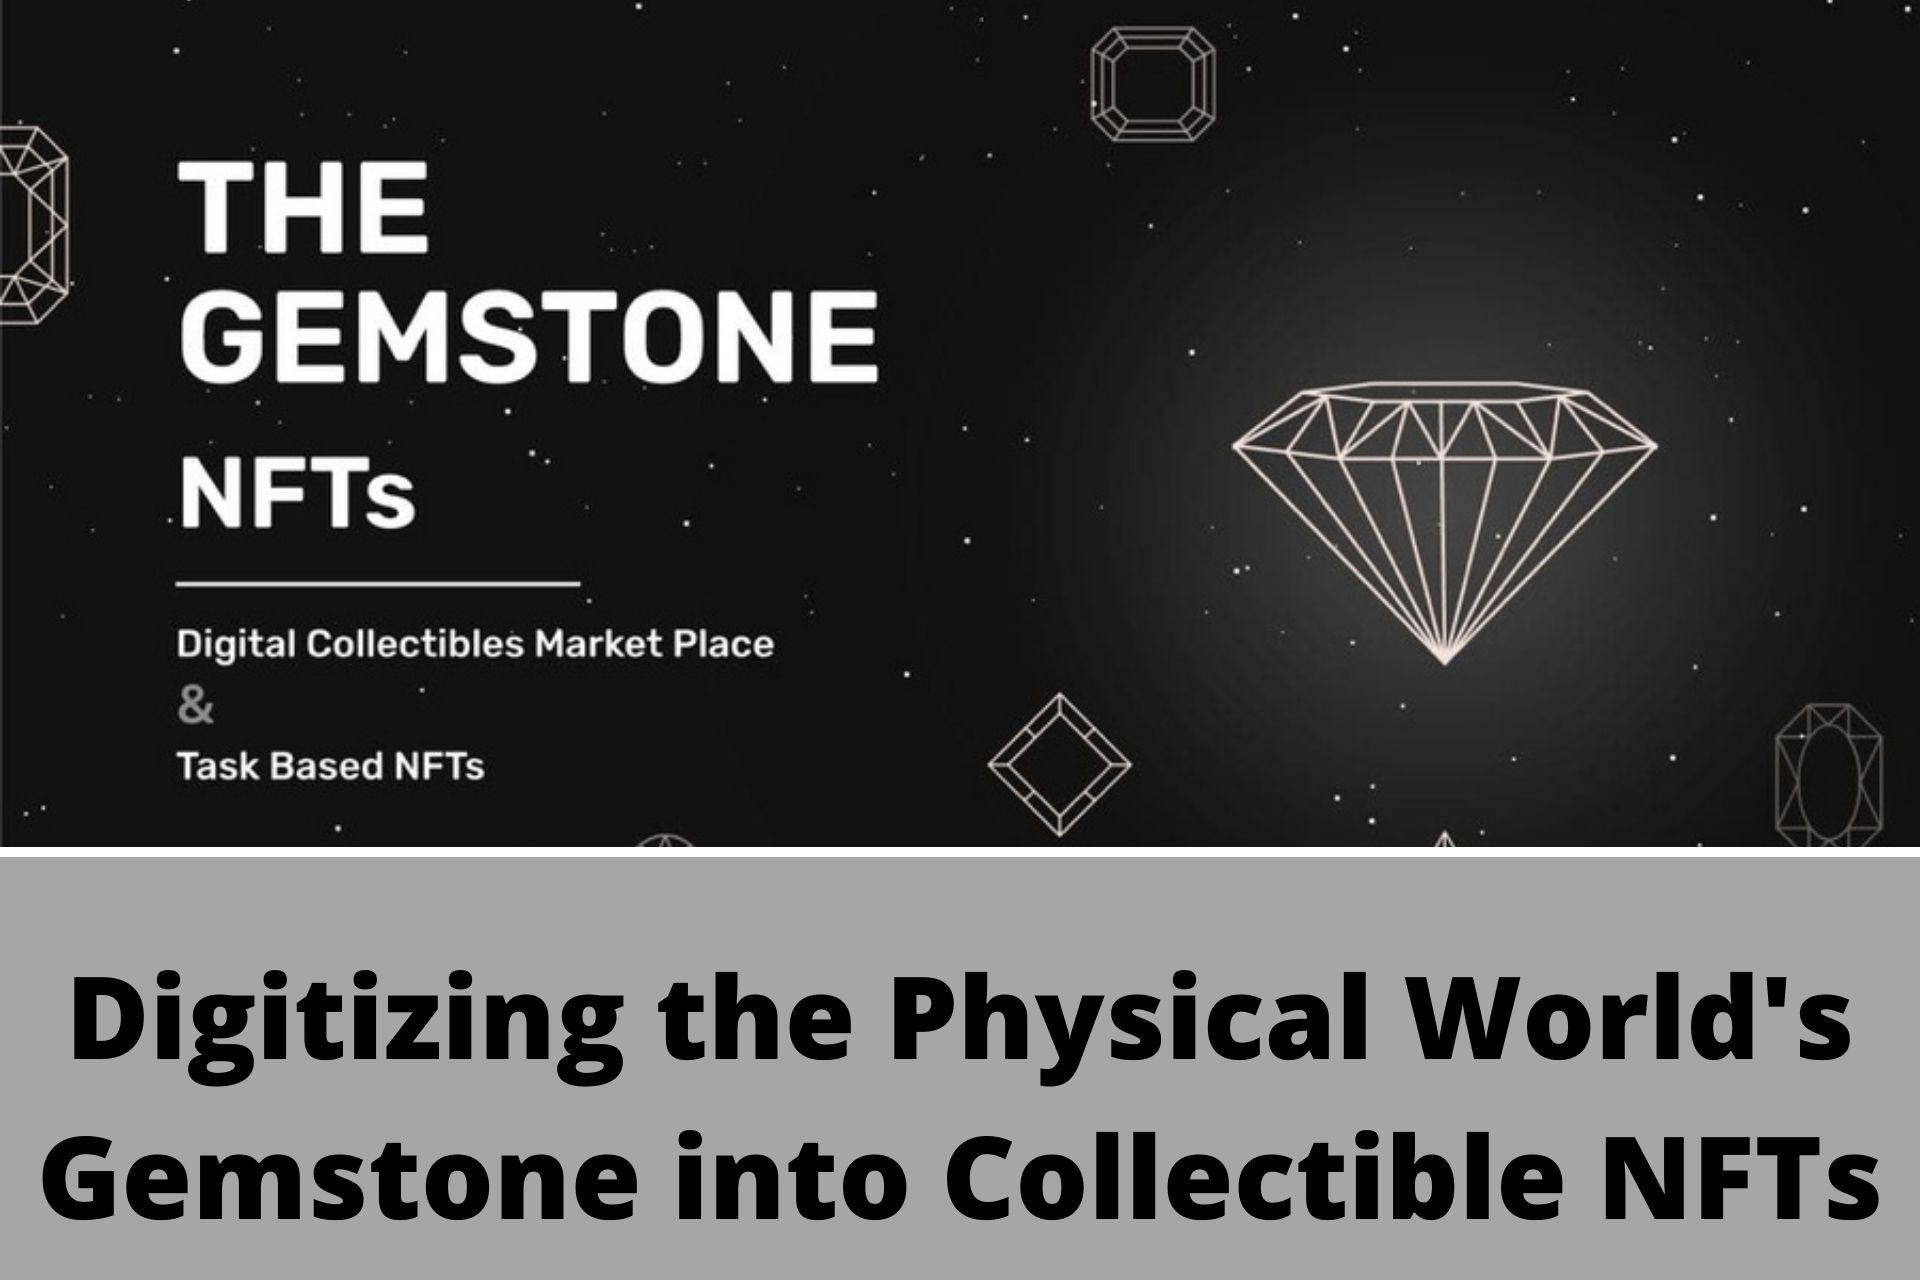 Gemstone | Building a Marketplace and Digitizing the Physical World's Gemstone into Collectible NFTs